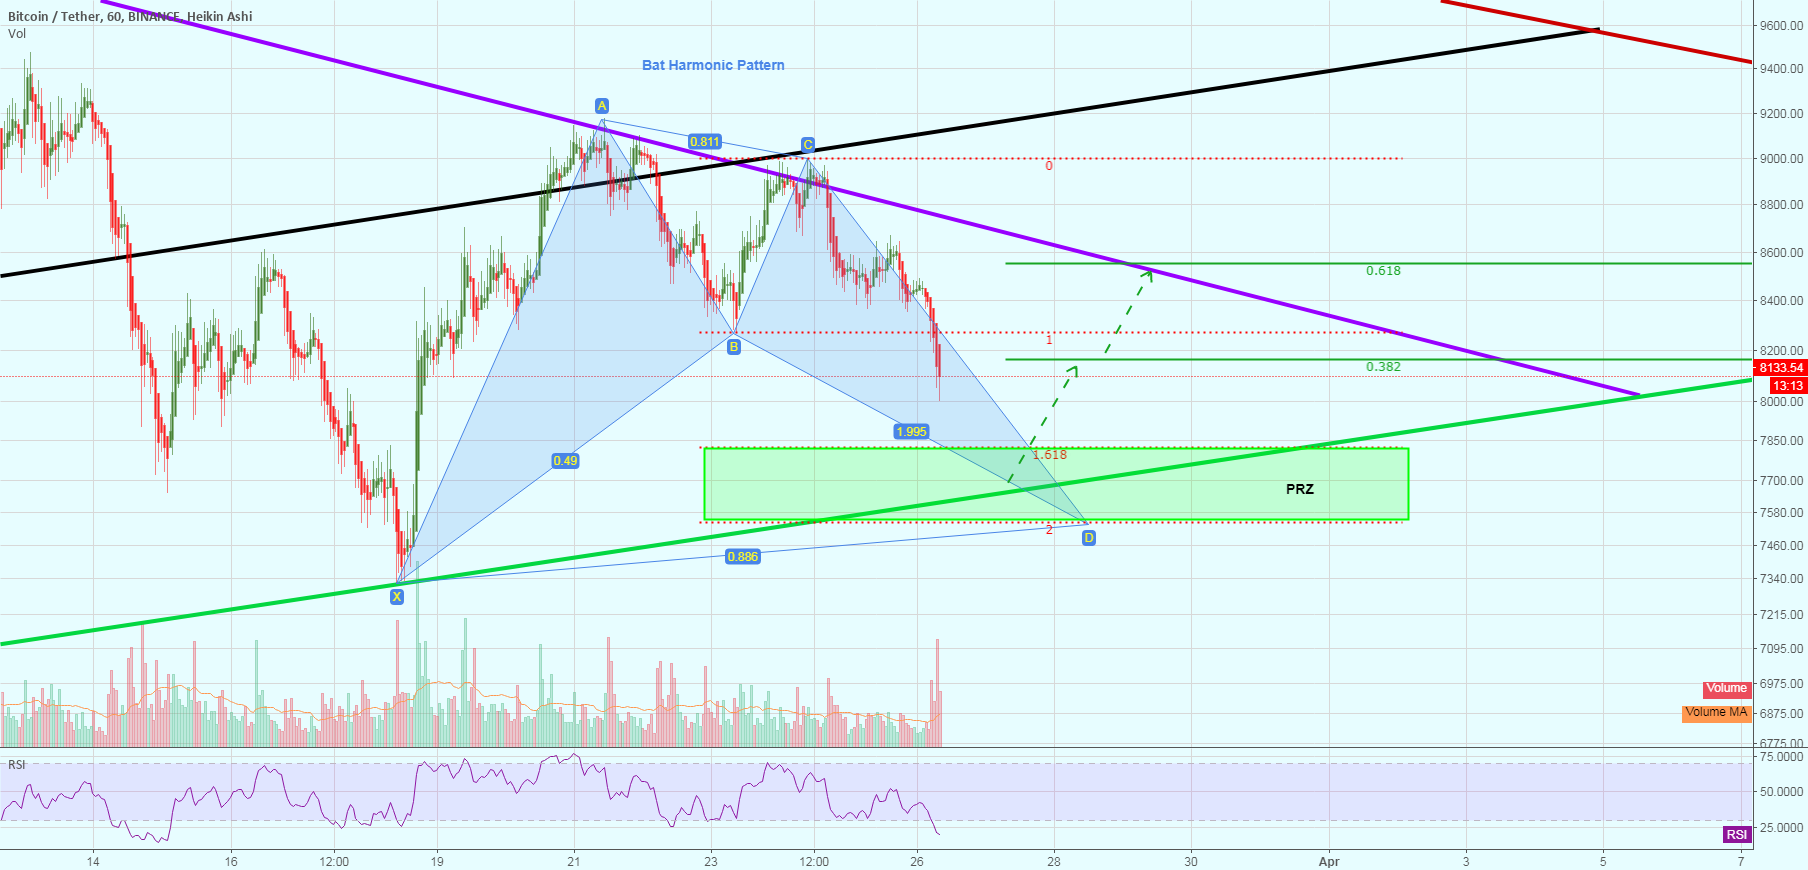 Bat Harmonic forming after another rejection at resistance line